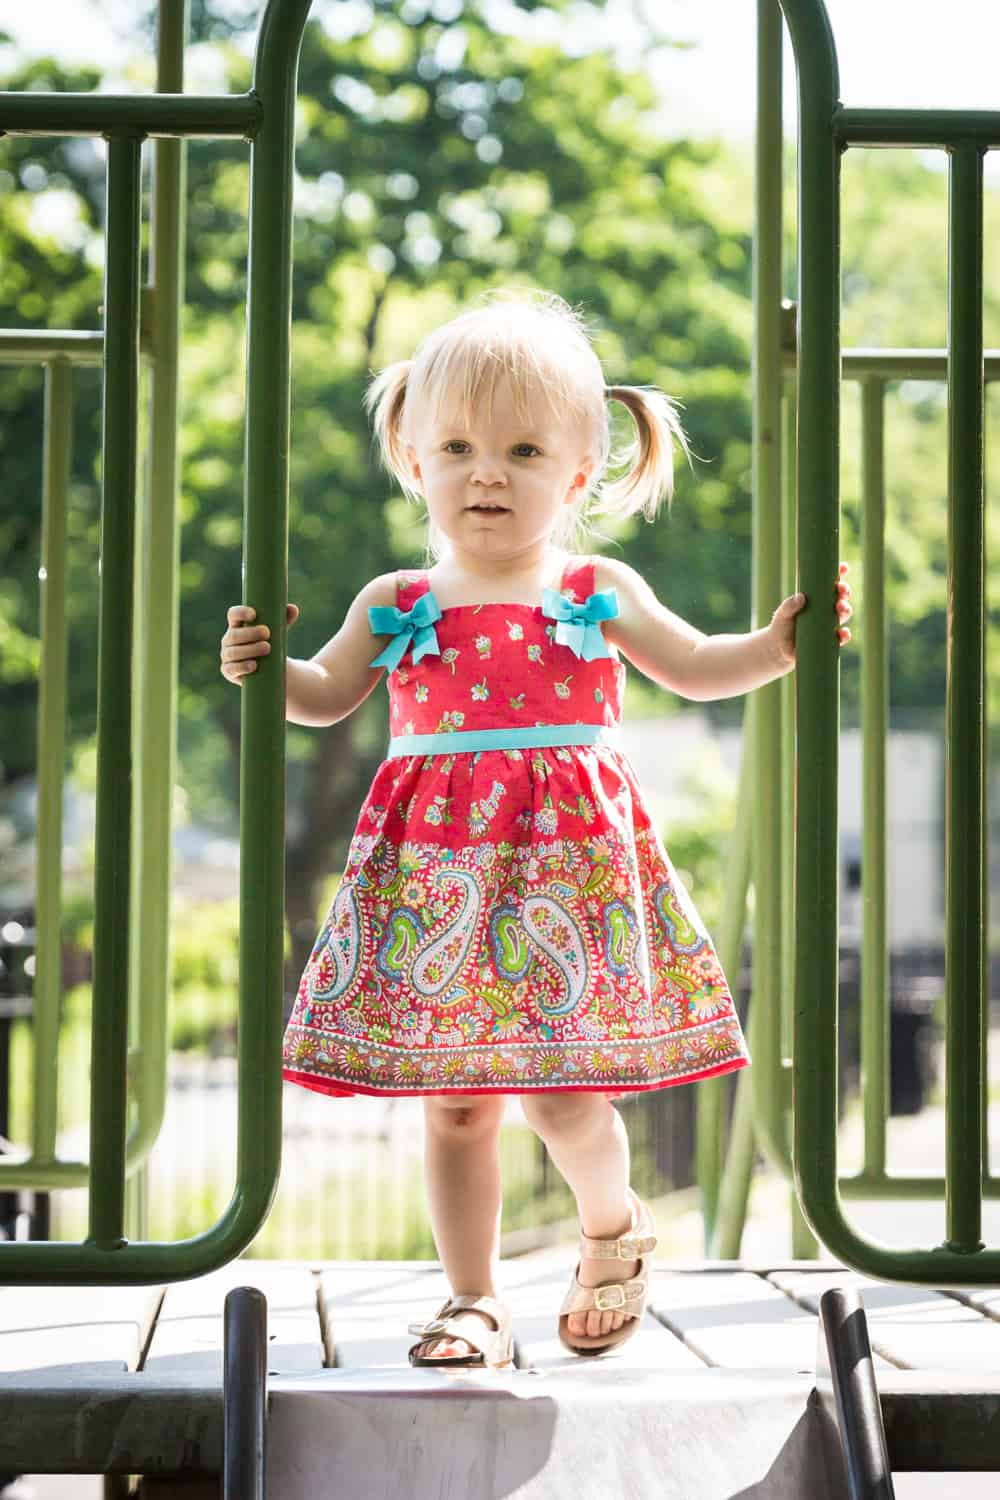 Little girl standing on slide in sunlight during a Forest Park family photo shoot